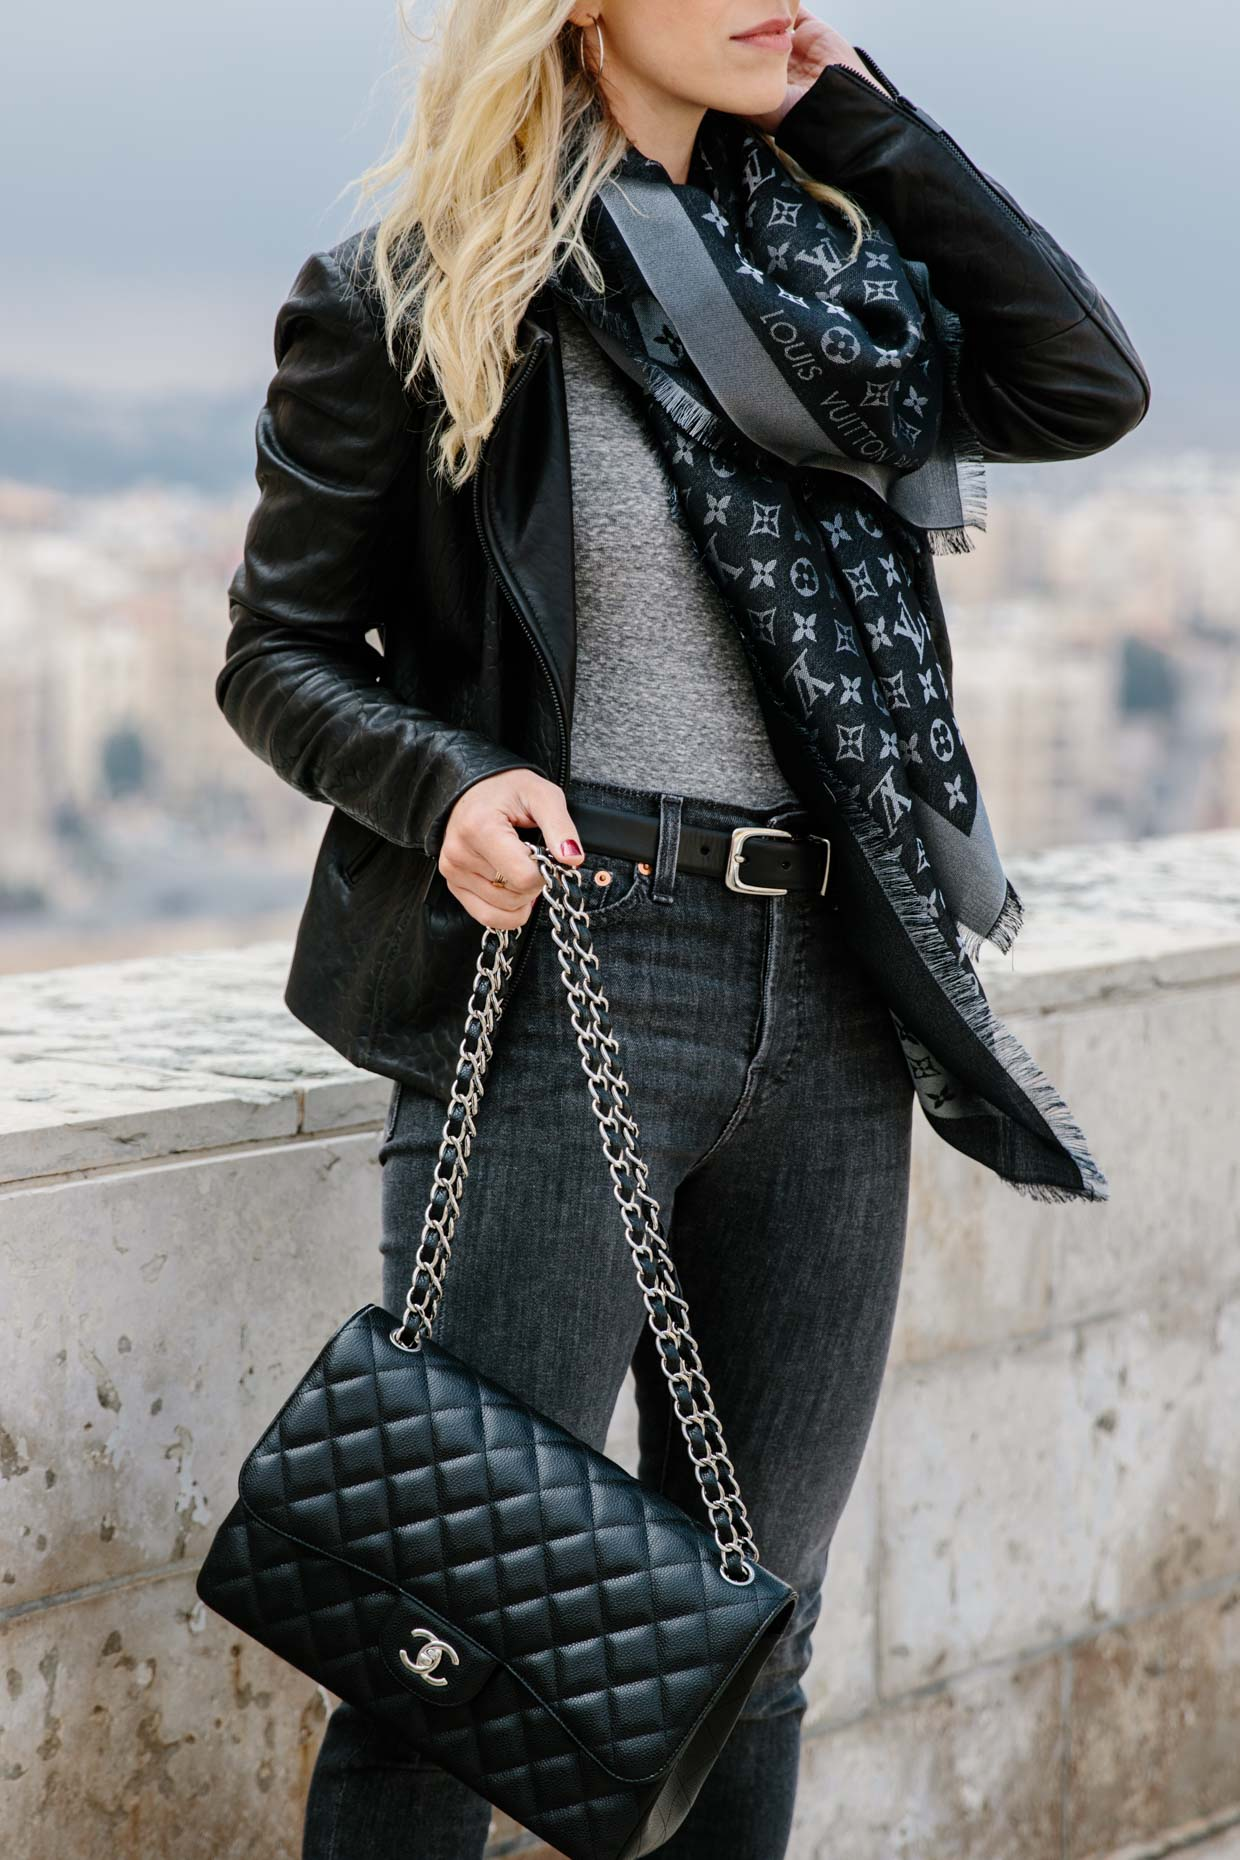 a10e805ea1996 How to style a Louis Vuitton scarf with a leather jacket and gray denim